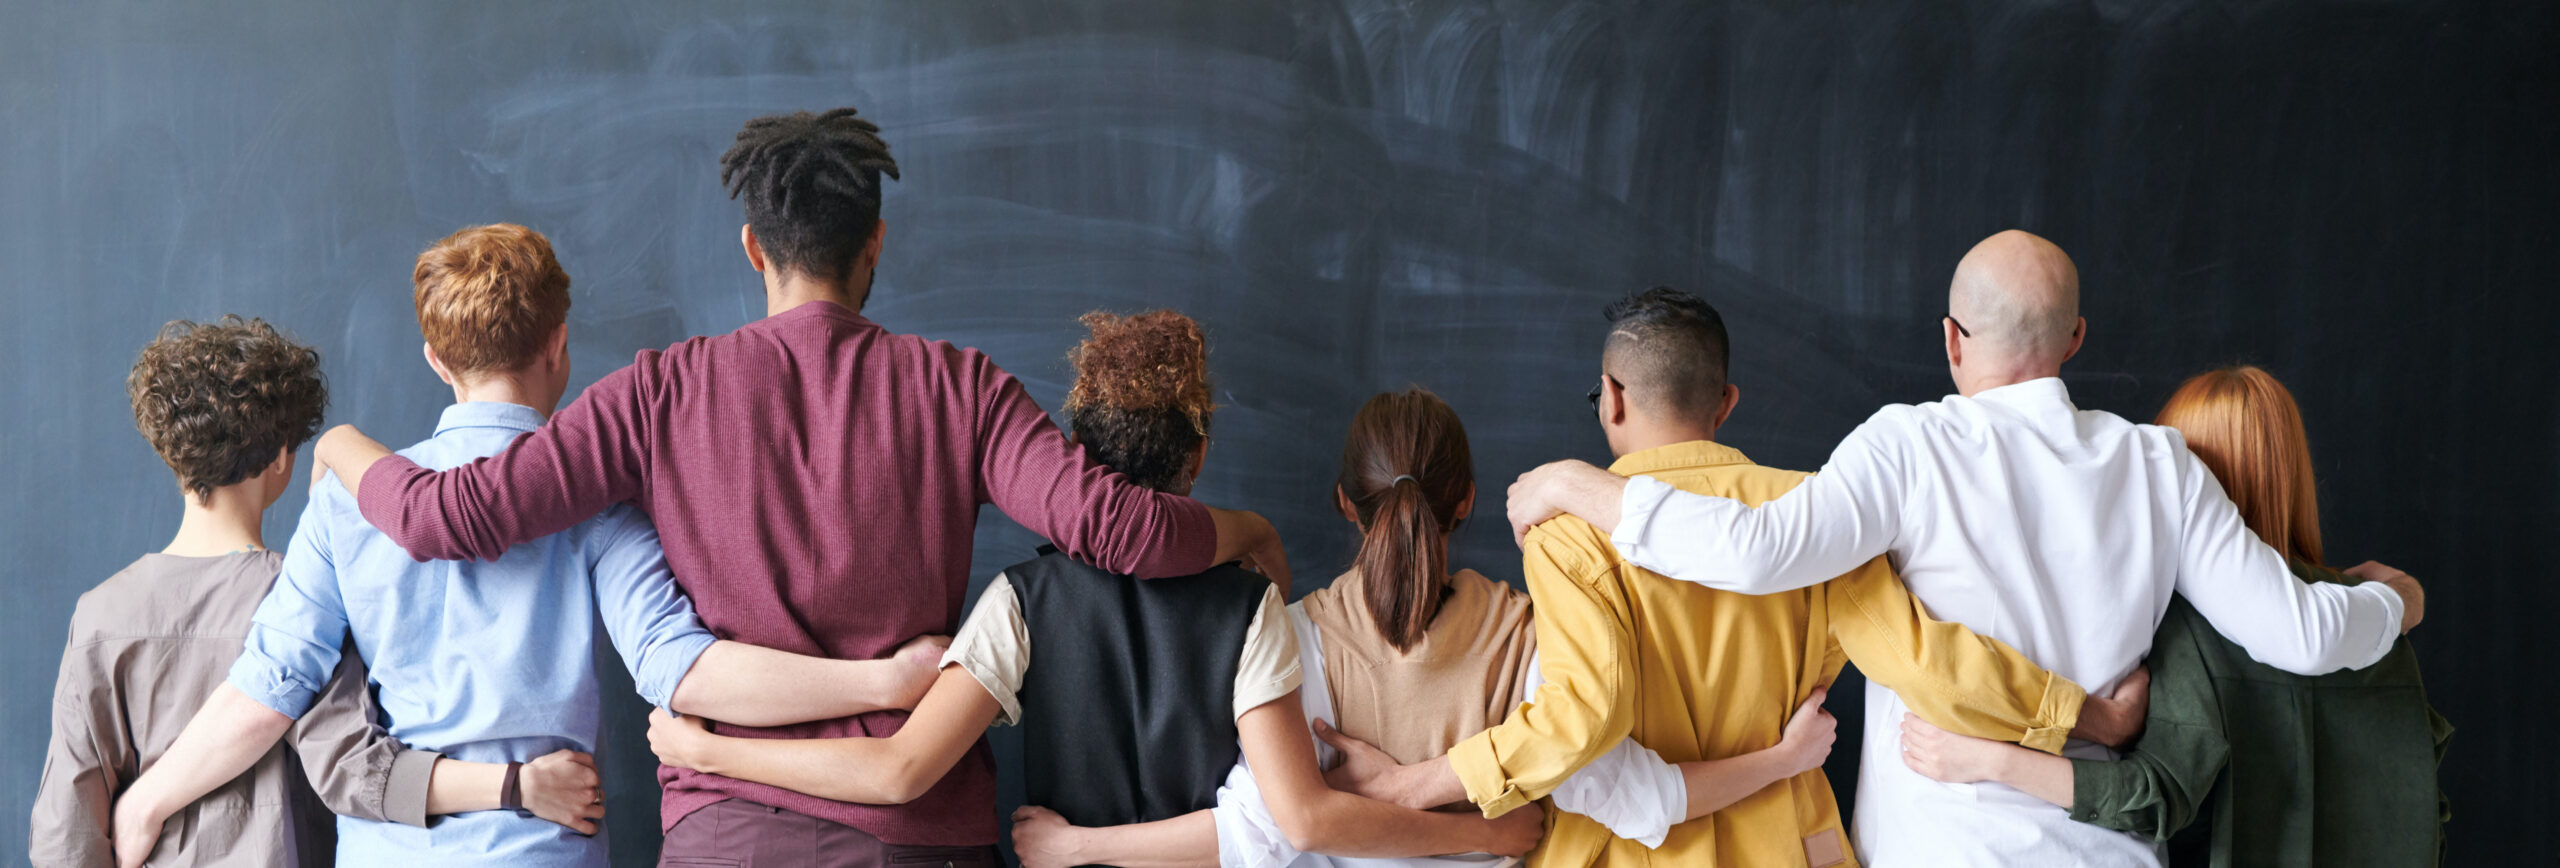 People facing a chalkboard with arms around each other's shoulders